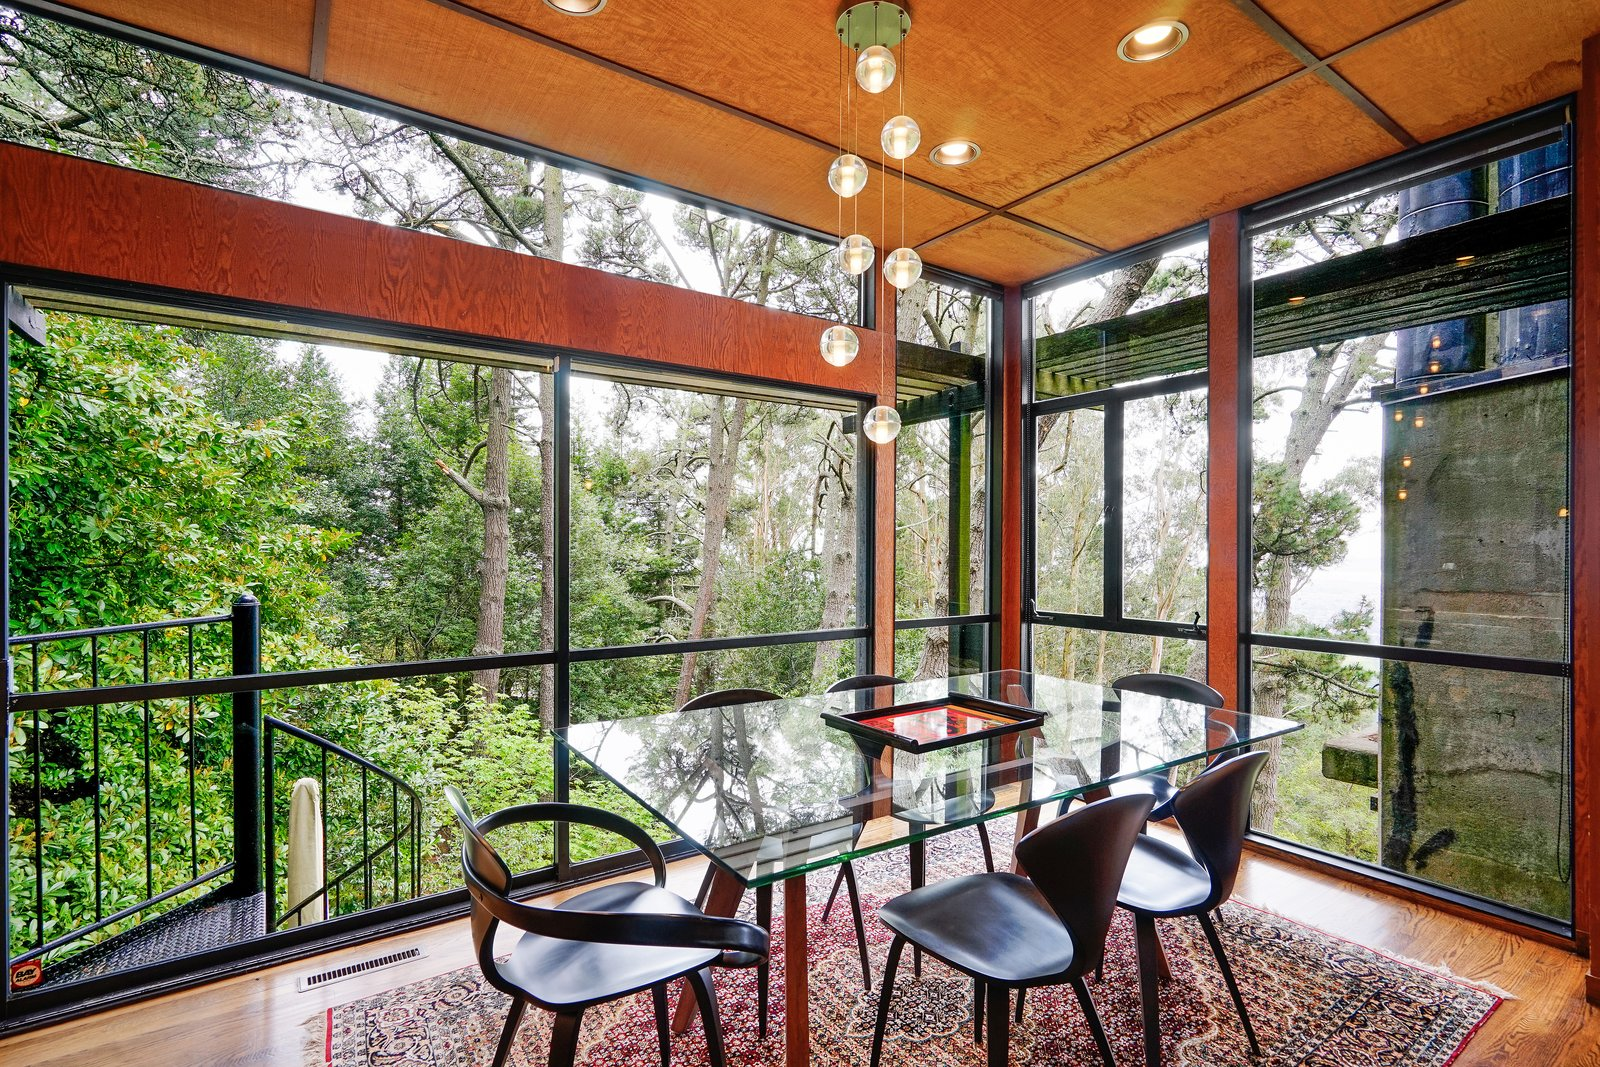 Dining Room, Table, Medium Hardwood Floor, Chair, Rug Floor, Recessed Lighting, and Pendant Lighting The dining room has the sense of being in a glass-enclosed structure in the woods.  Photo 6 of 17 in This Knockout Midcentury in the Bay Area Will Run You $1.9M